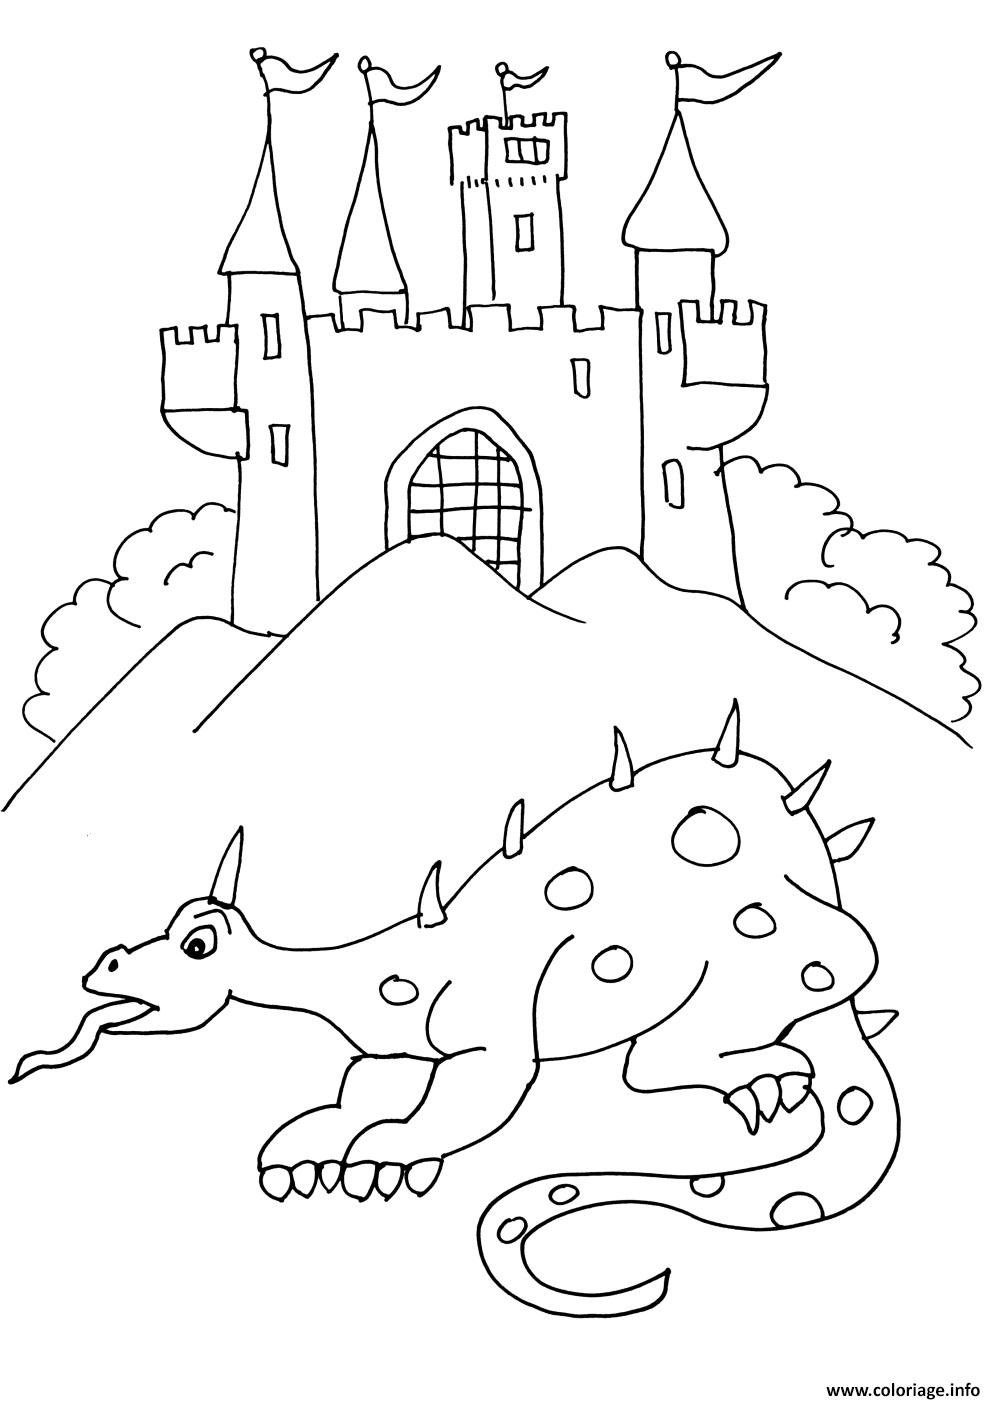 Coloriage chateau de chevalier 8 - Coloriage chateau de princesse ...